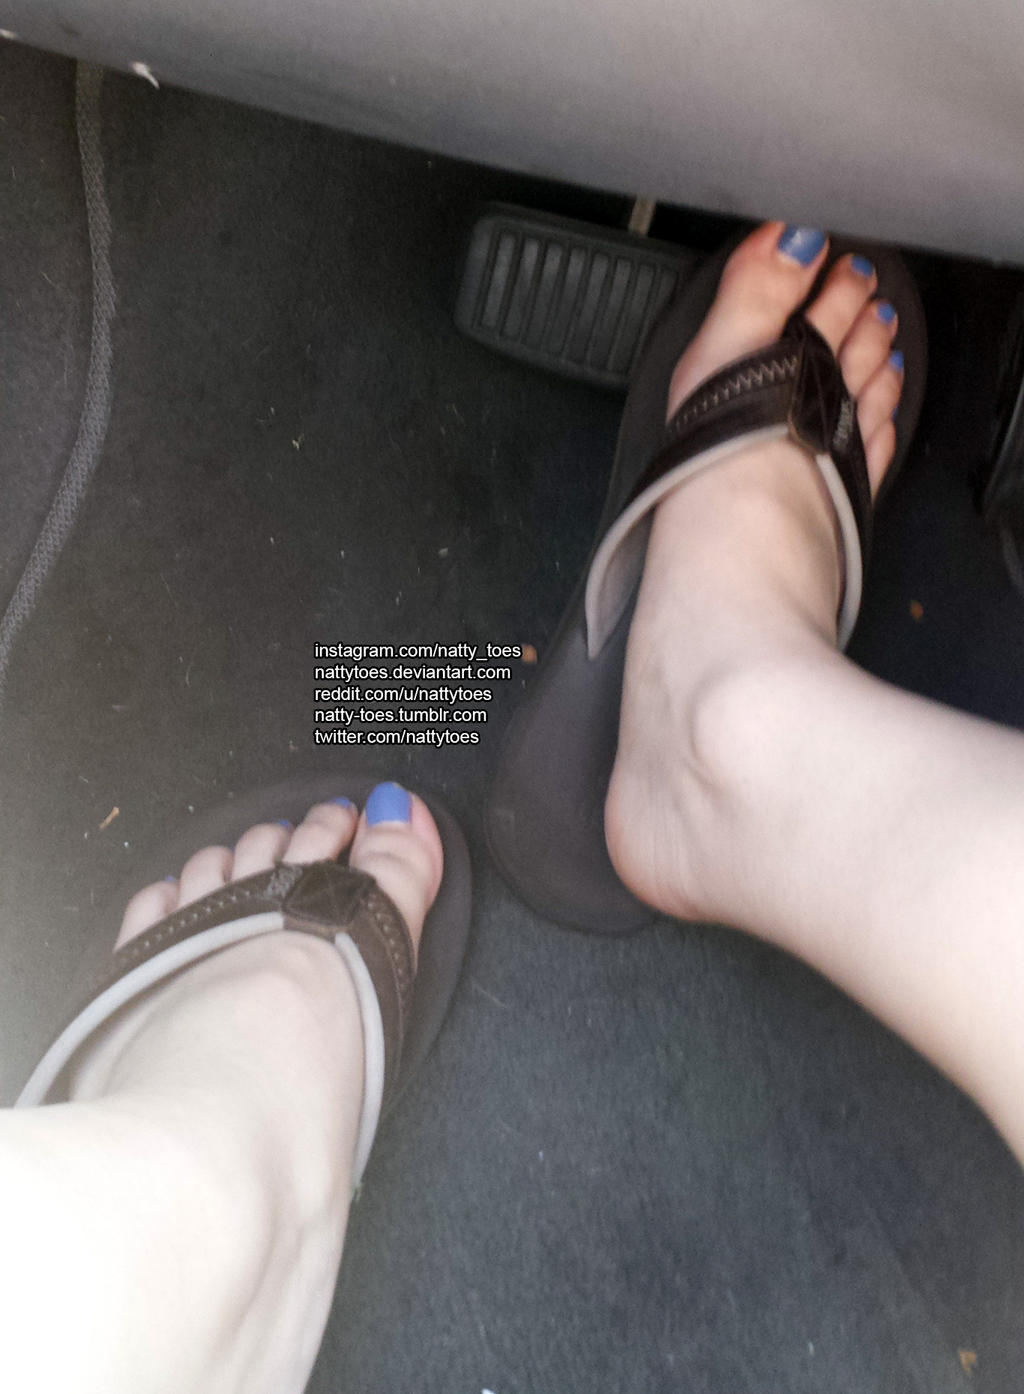 Pedal Pumping Flooring : Pedal pumping by nattytoes on deviantart